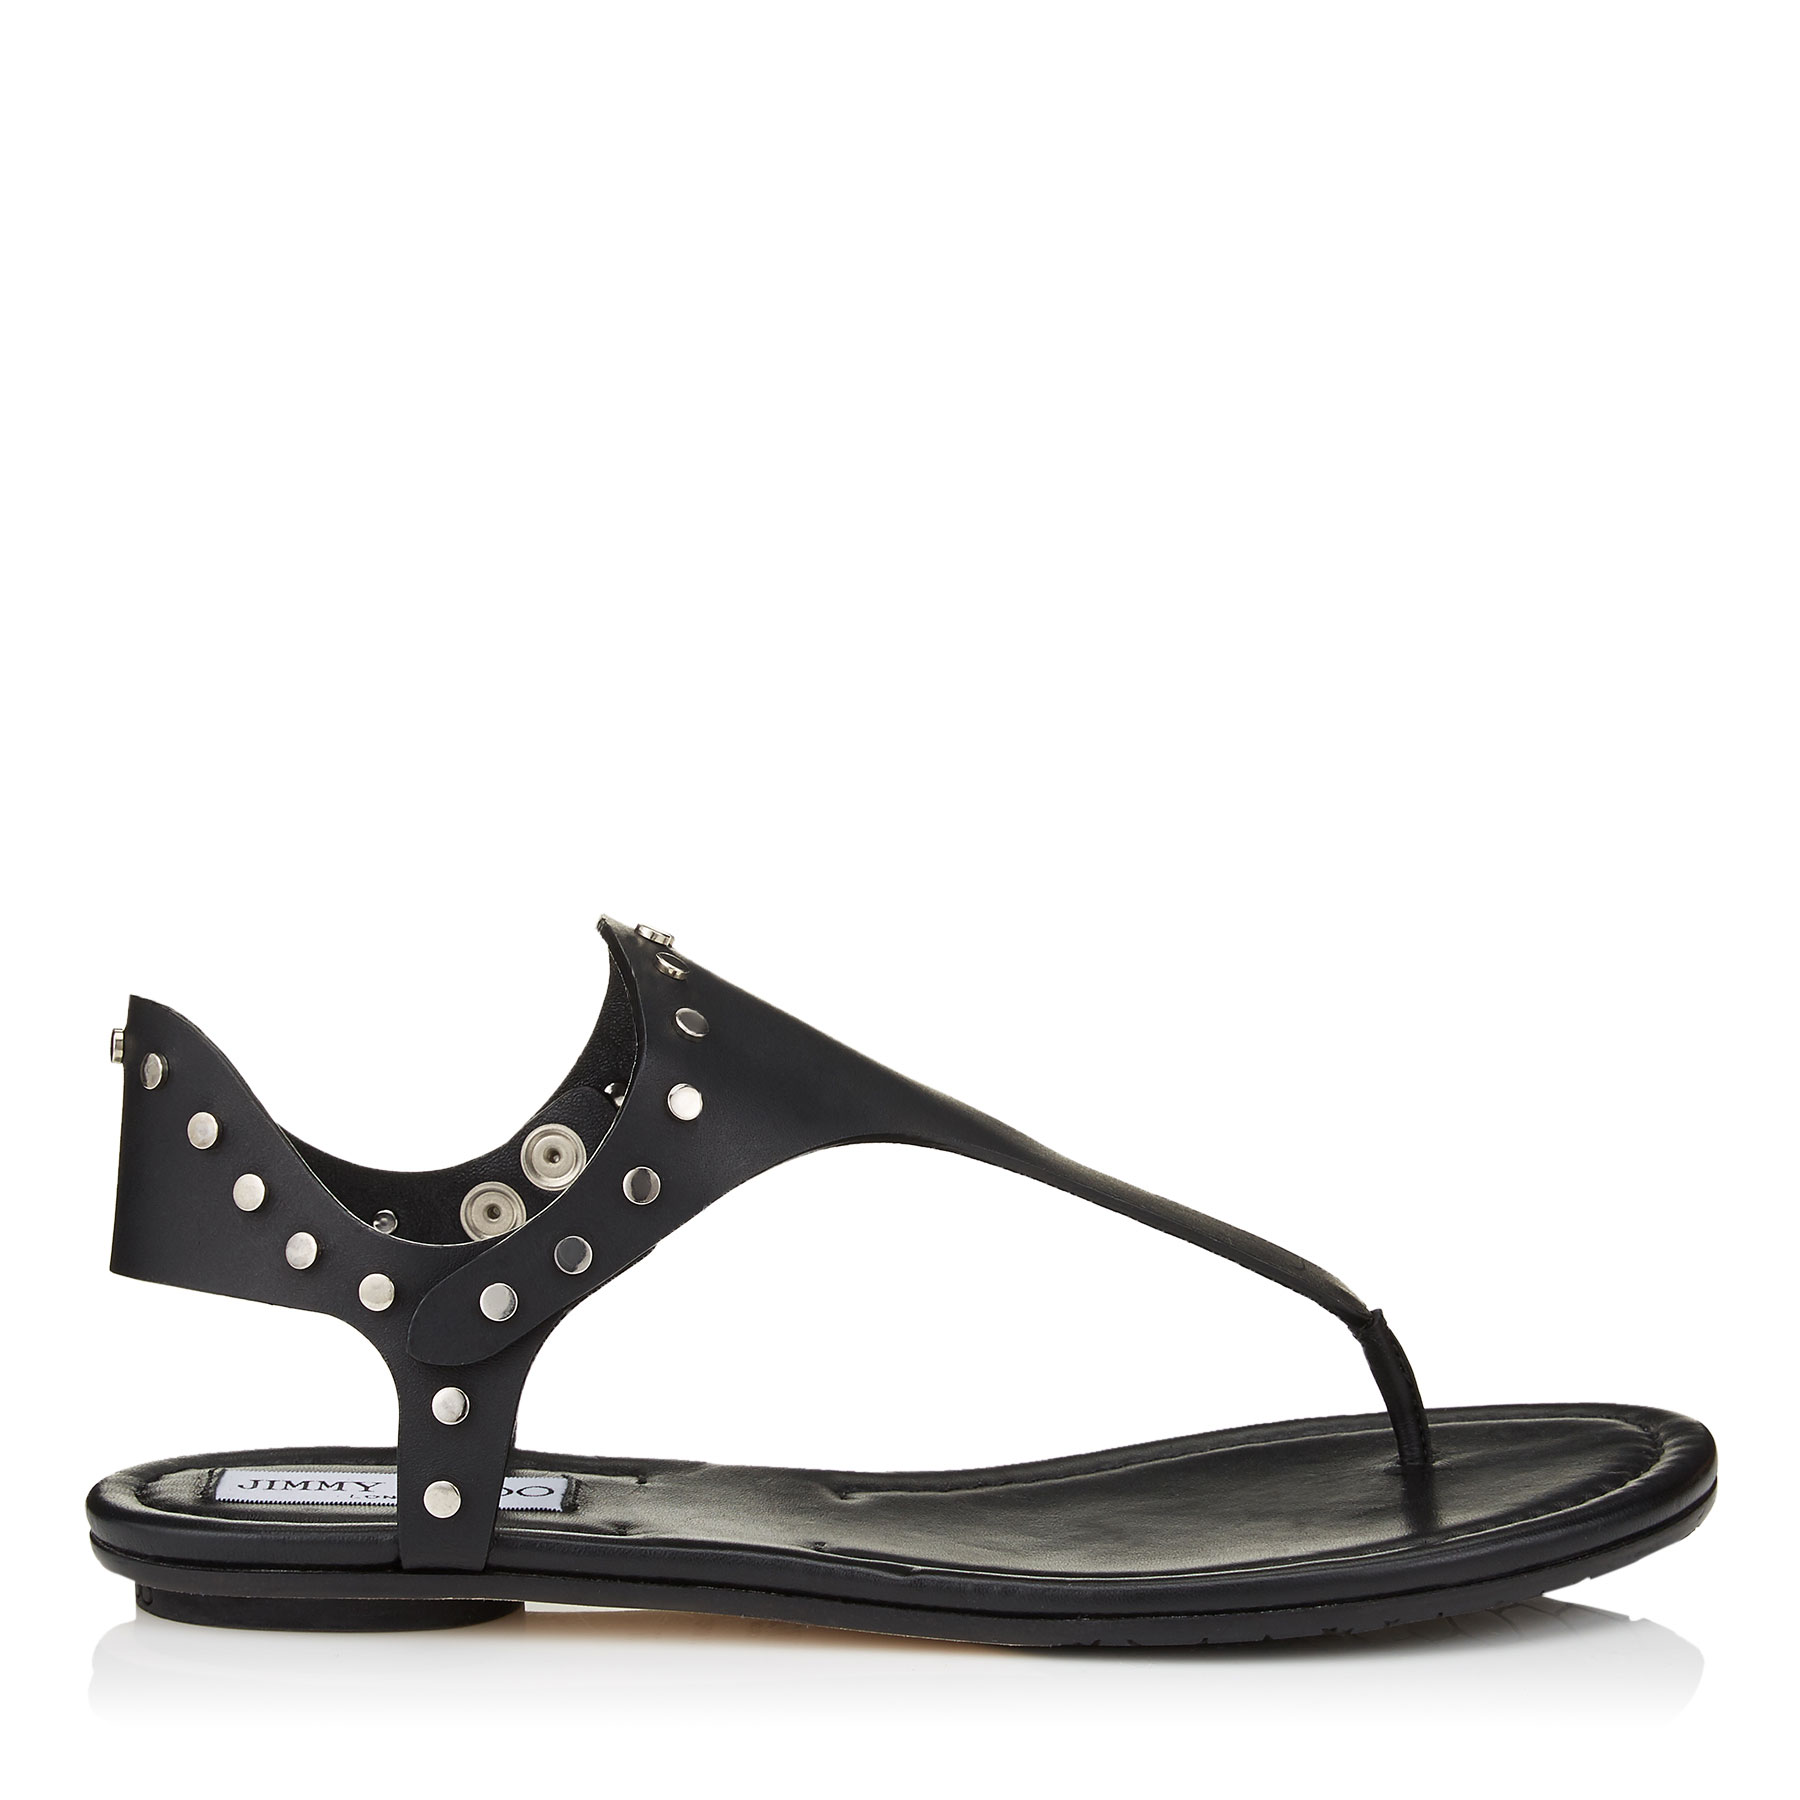 DARA FLAT Dara Black Vacchetta Leather Sandals. by Jimmy Choo